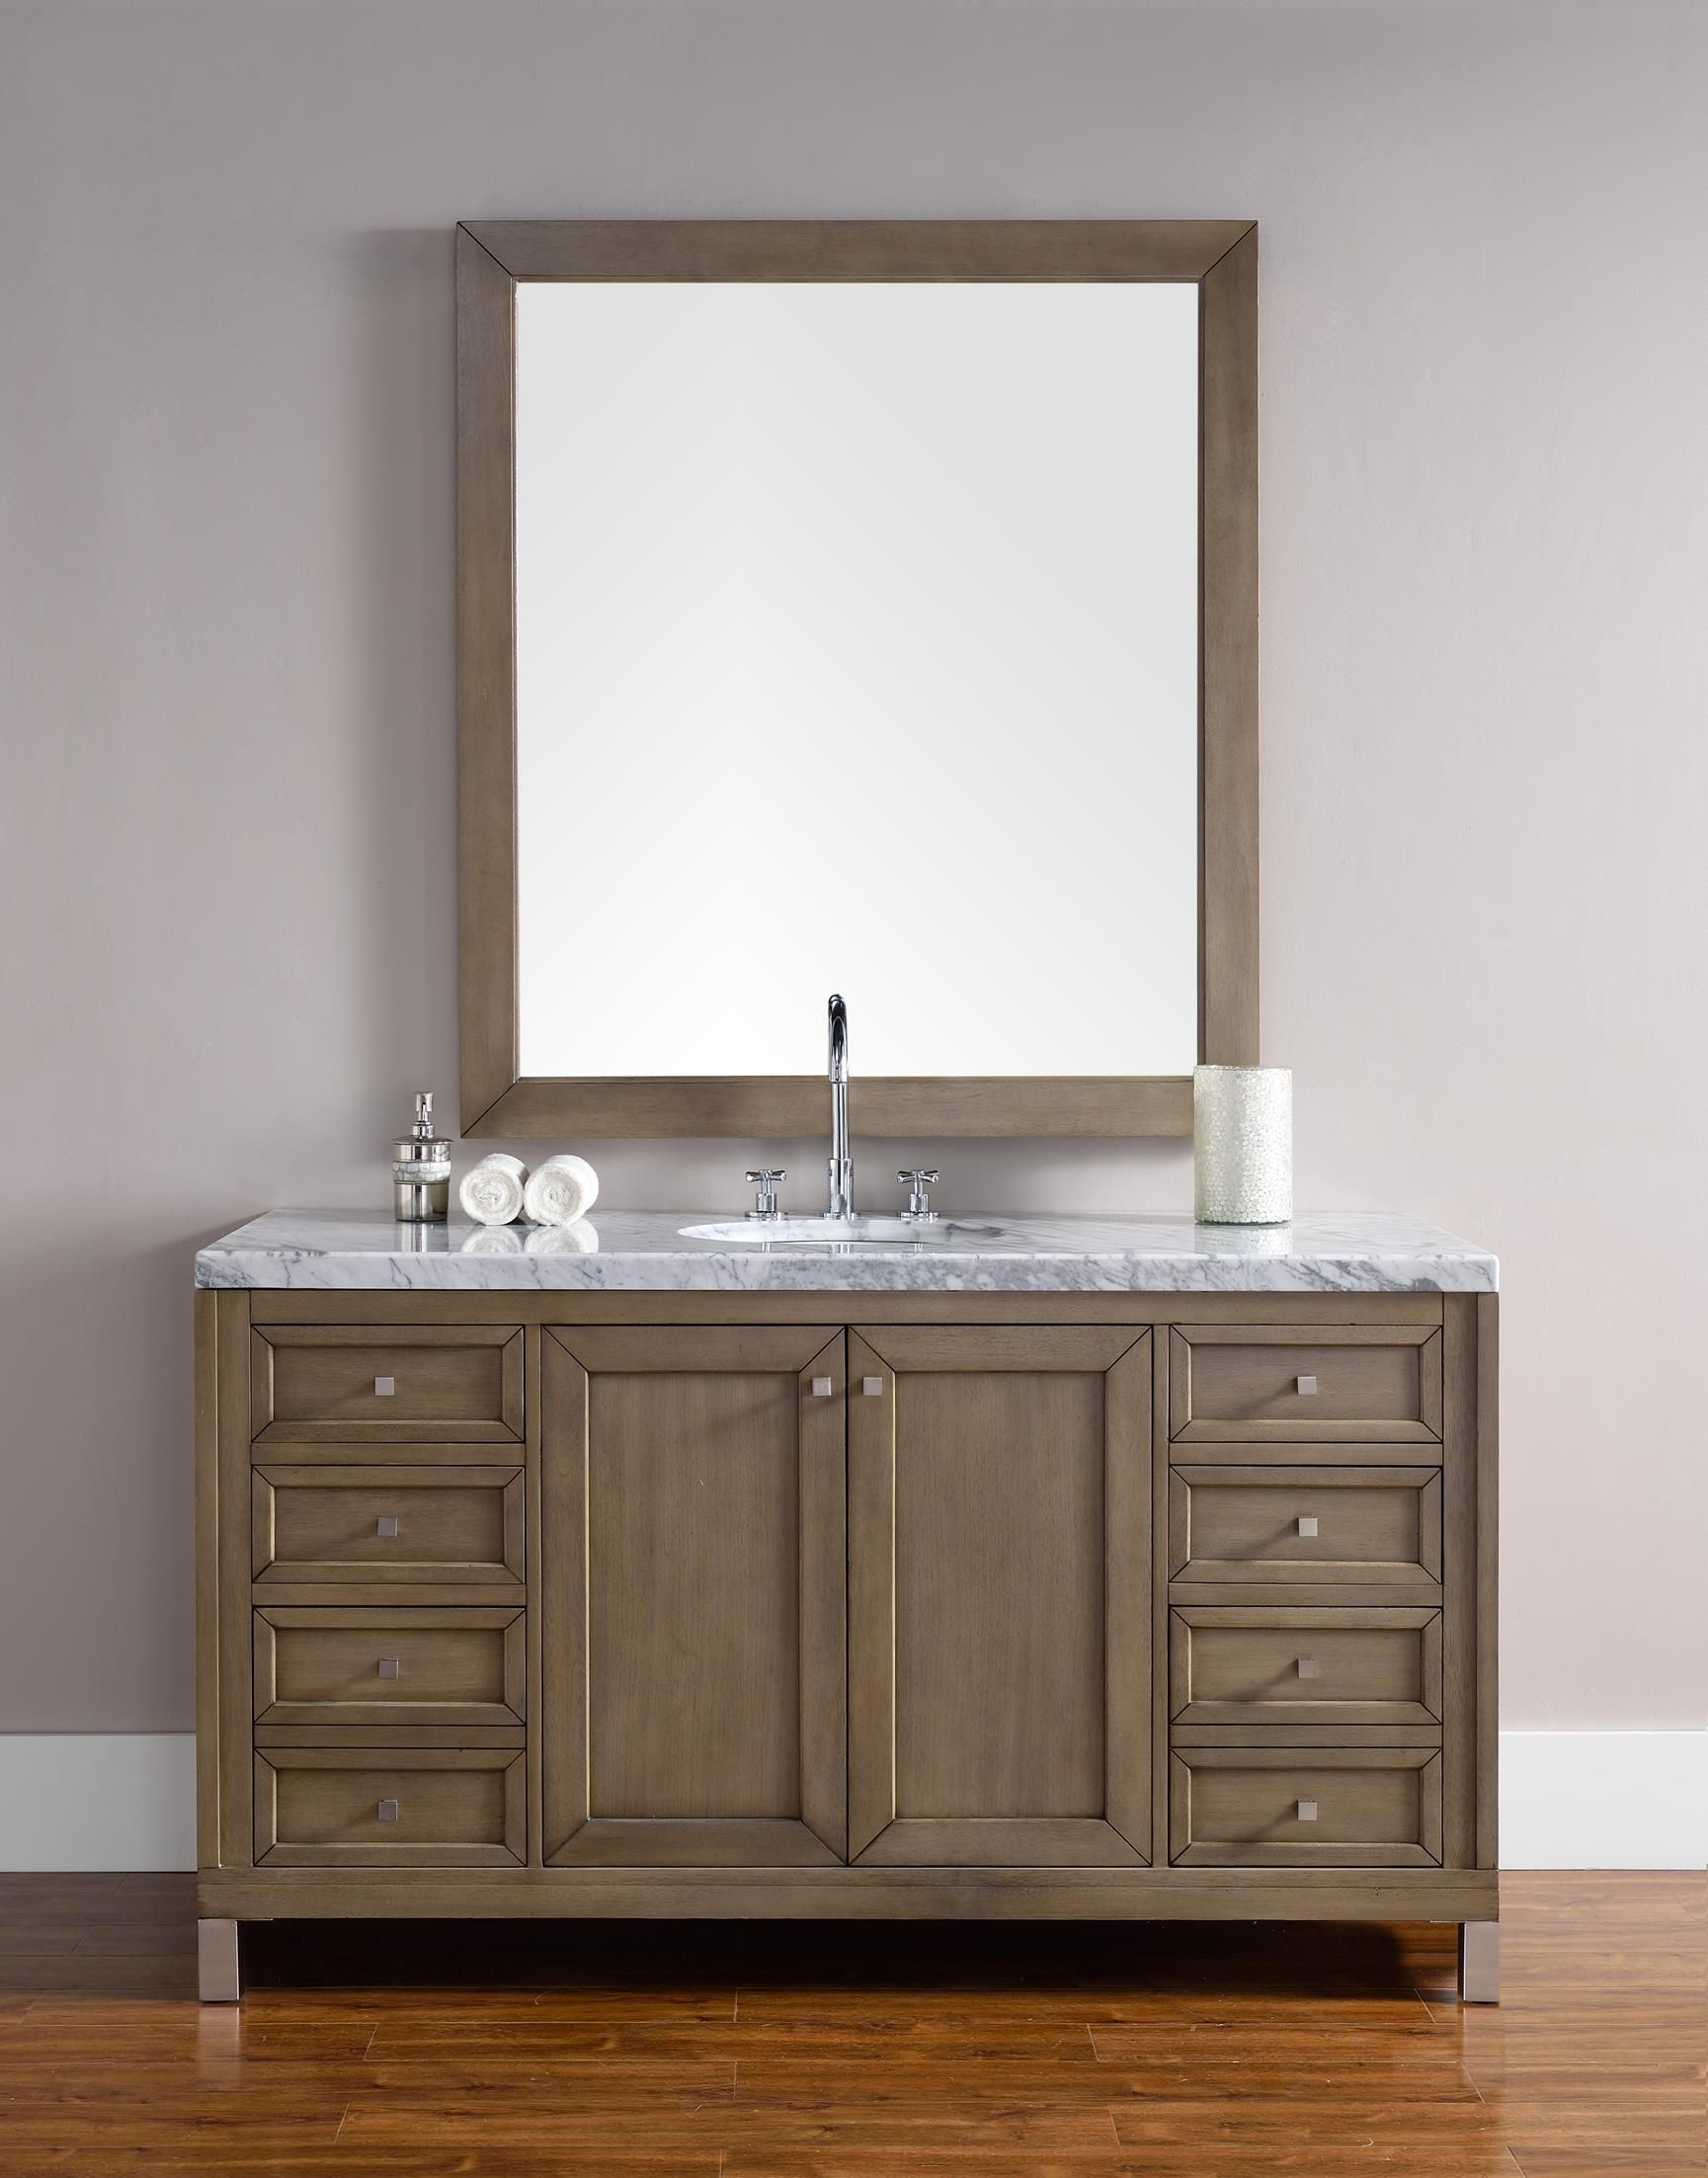 Chicago 60 Single Sink Bathroom Vanity Cabinet White Washed Walnut Finish Carrara Marble Countertop Matching Mirror